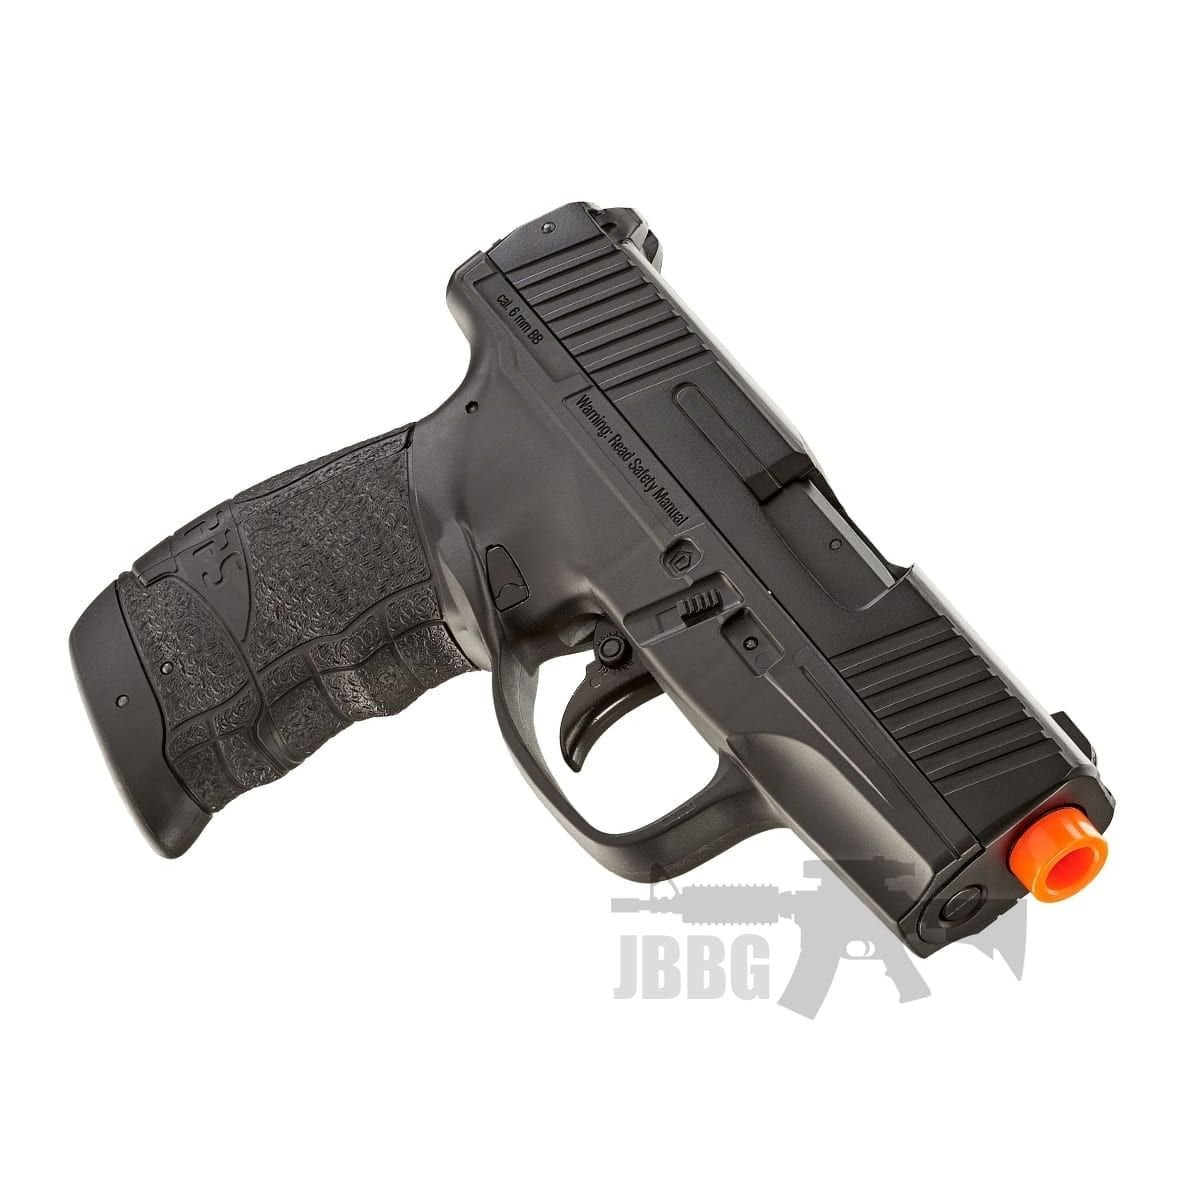 m2 pps airsoft pistol